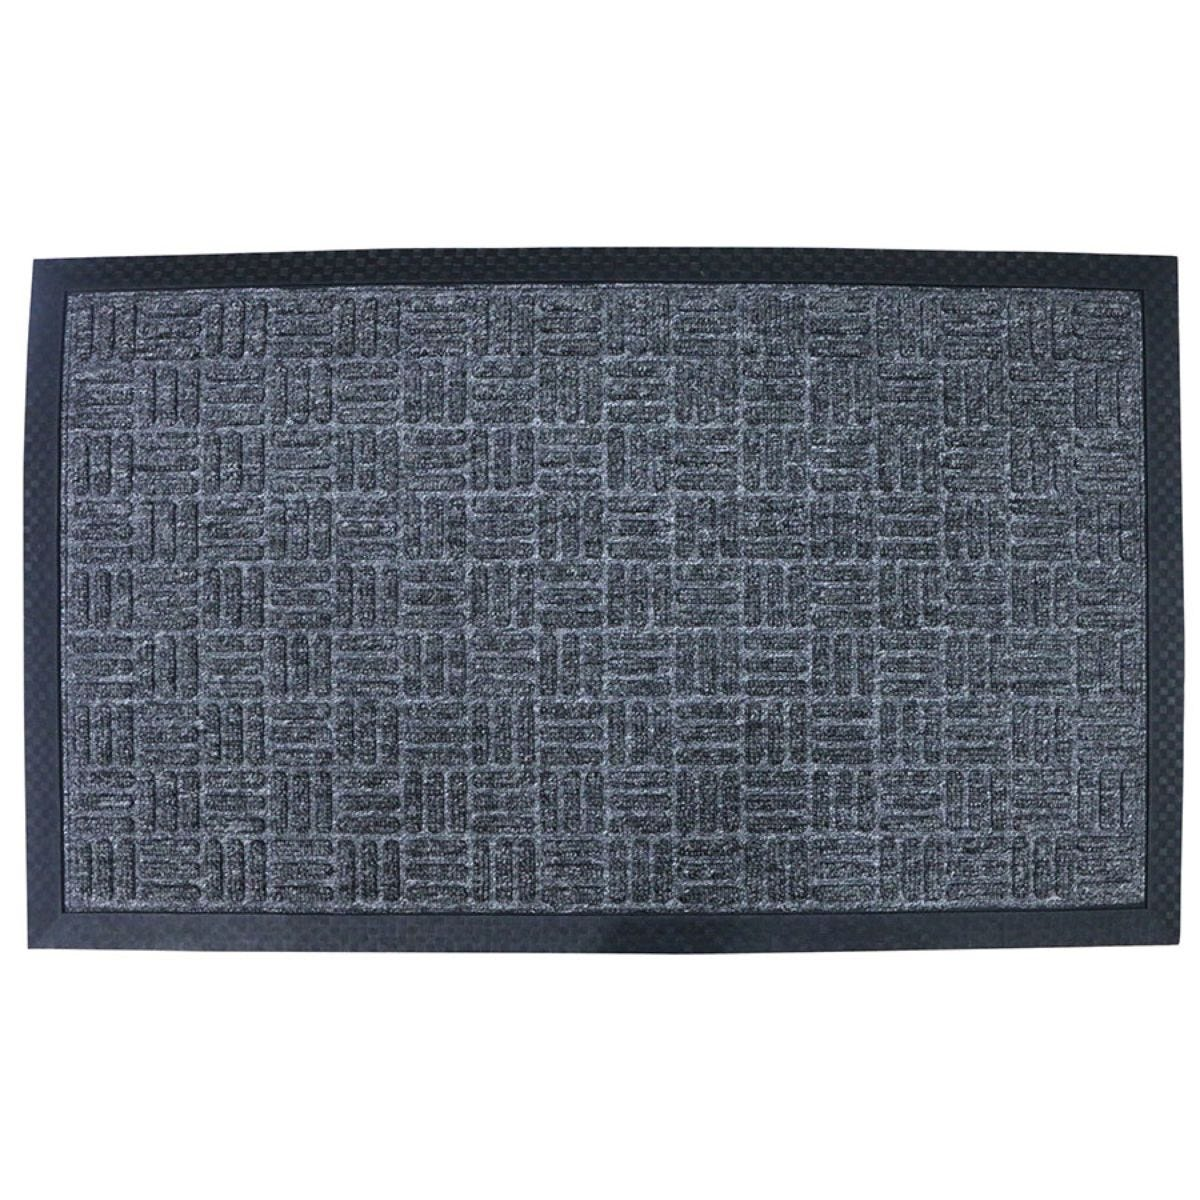 Home Essentials 45 x 75cm Tread Rubber Doormat - Grey